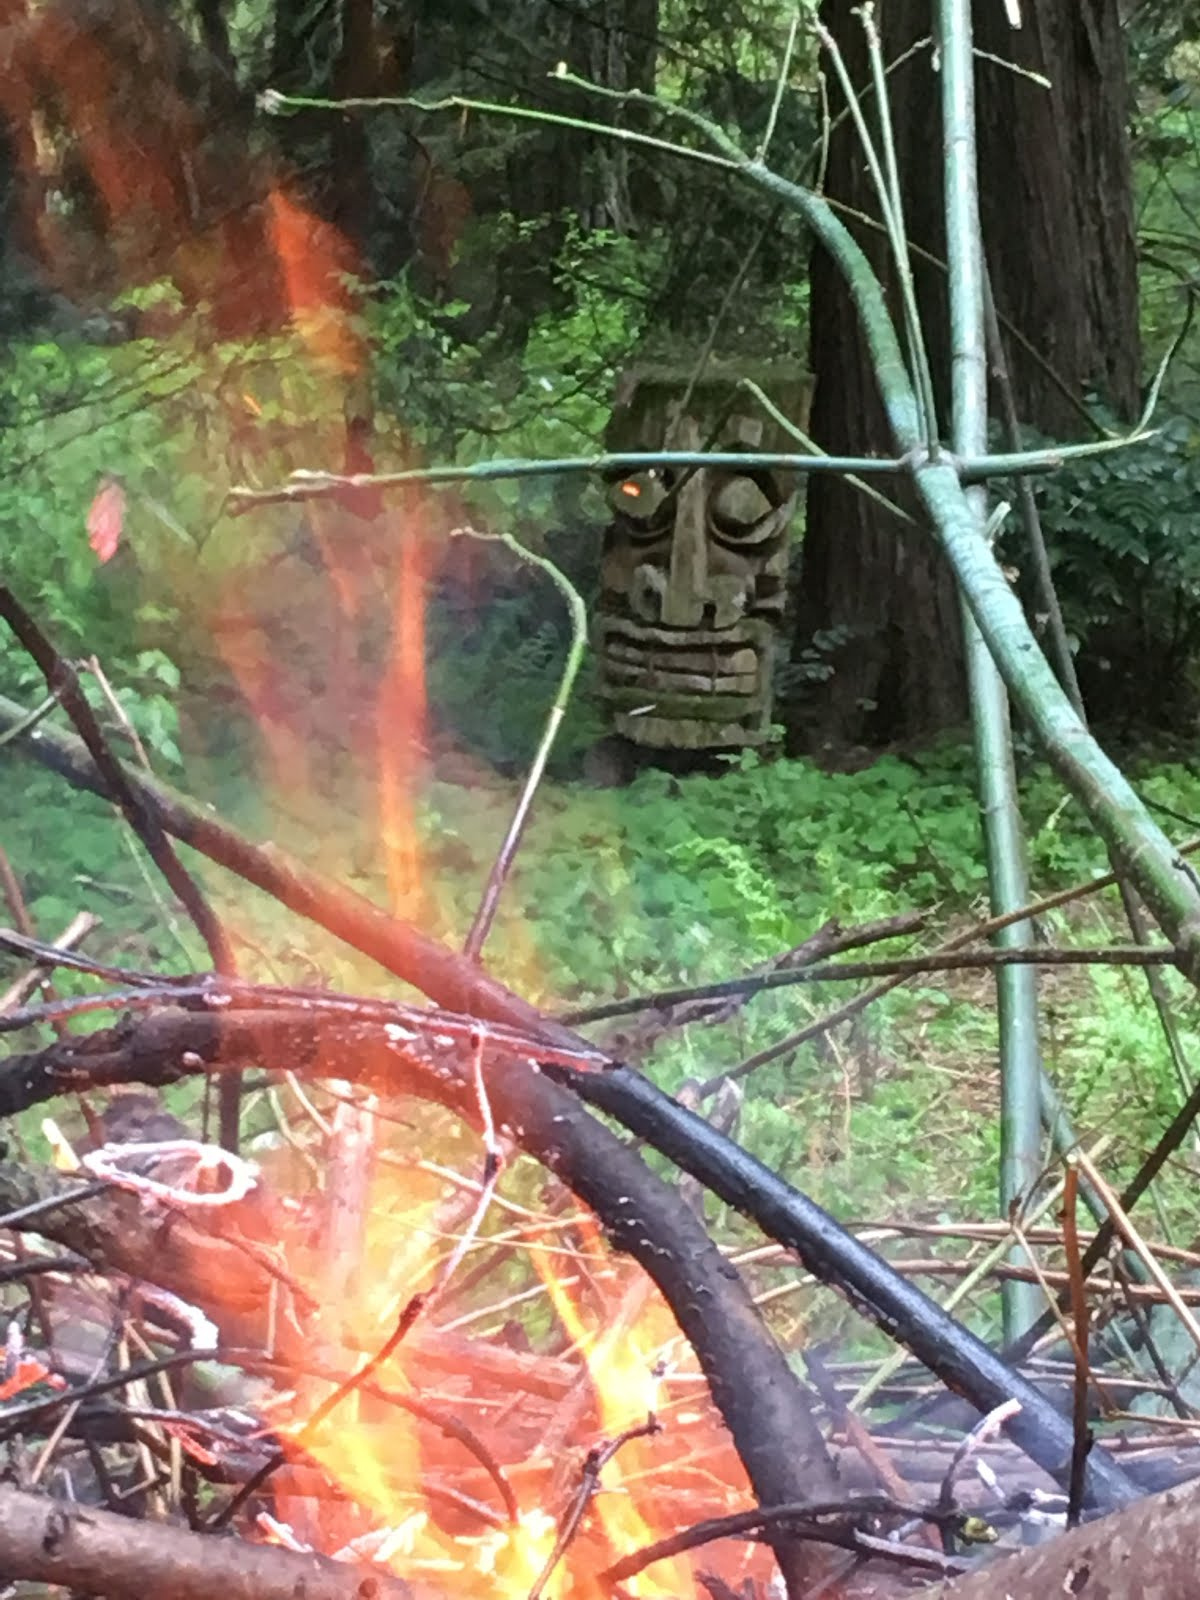 Burning debris this weekend under the watchful eye of Fire Marshall Bill.